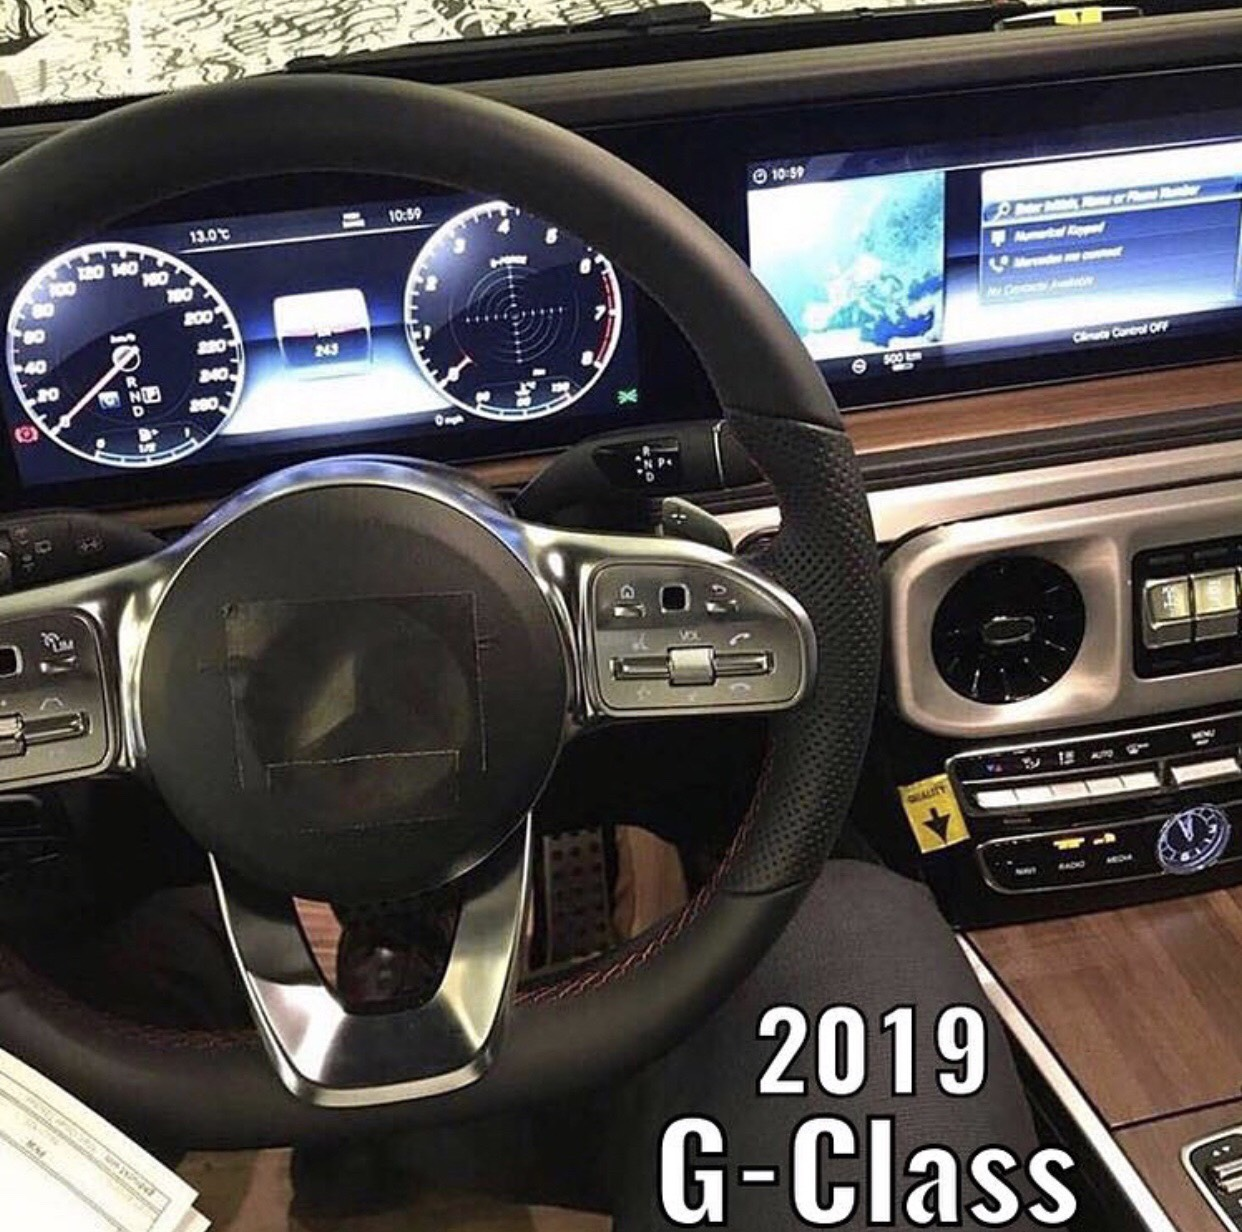 2019 Mercedes G-Class Interior Shows Up In New Leaked